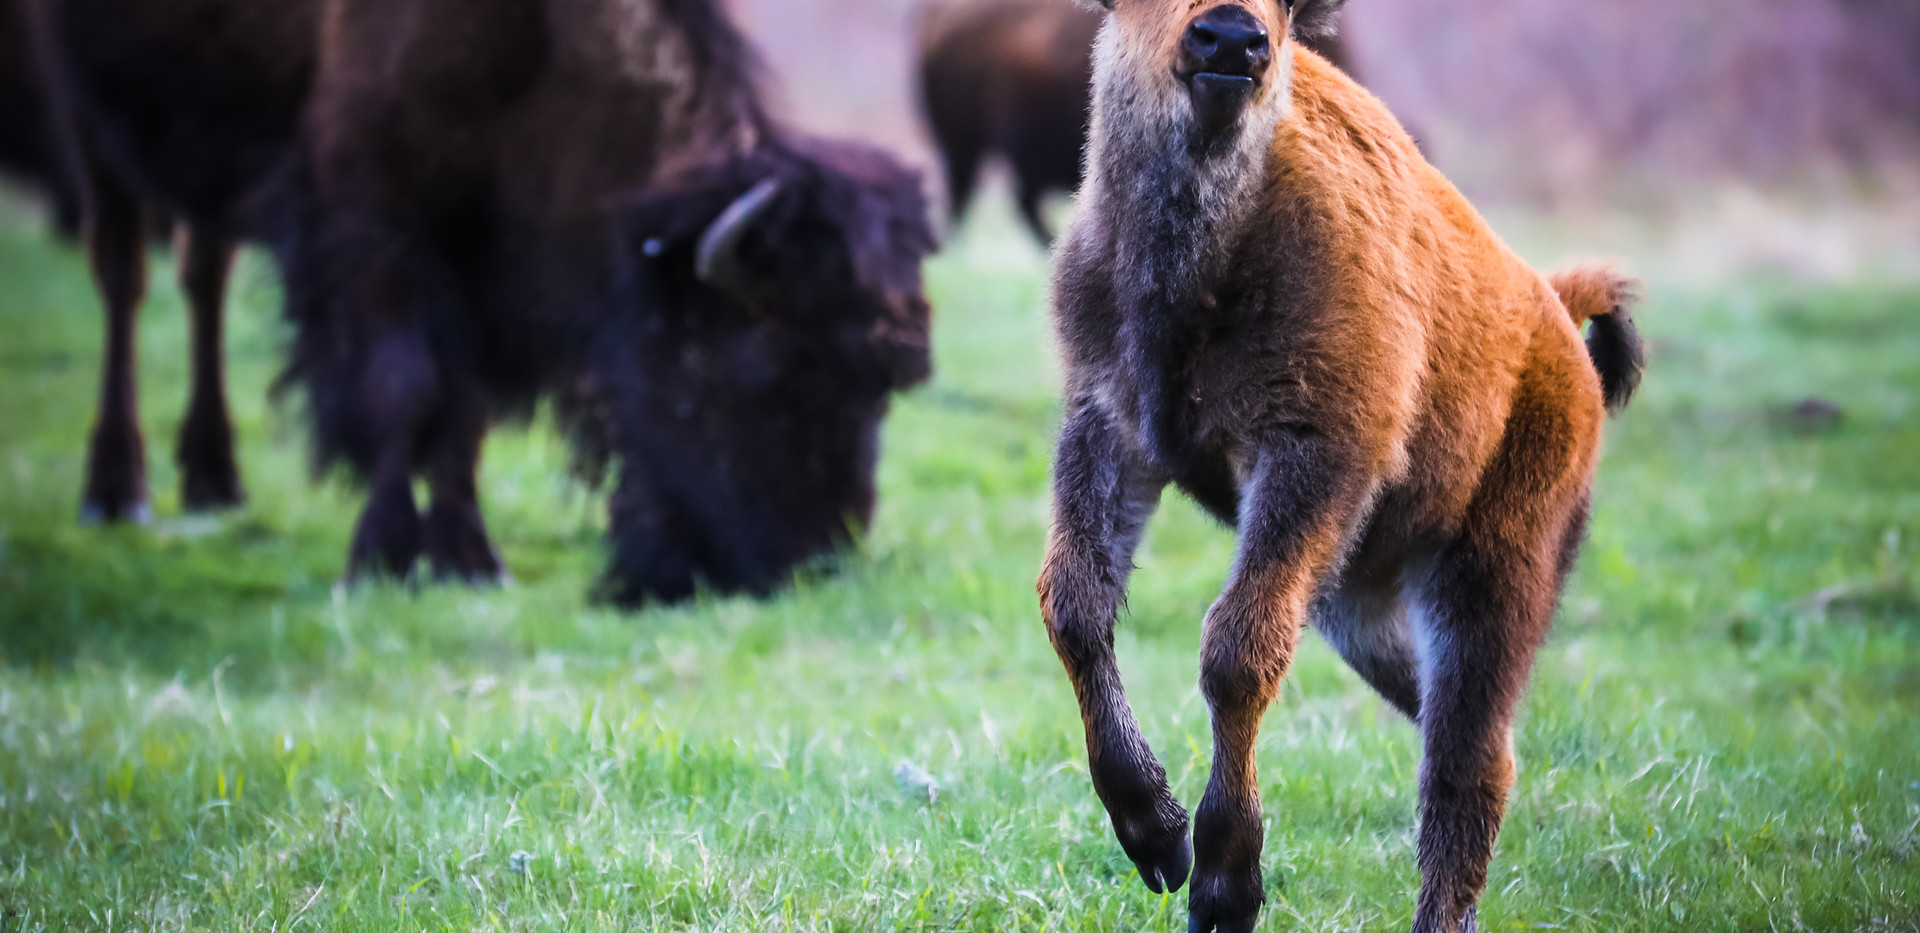 Bison Calf Edited_Morrow.JPG